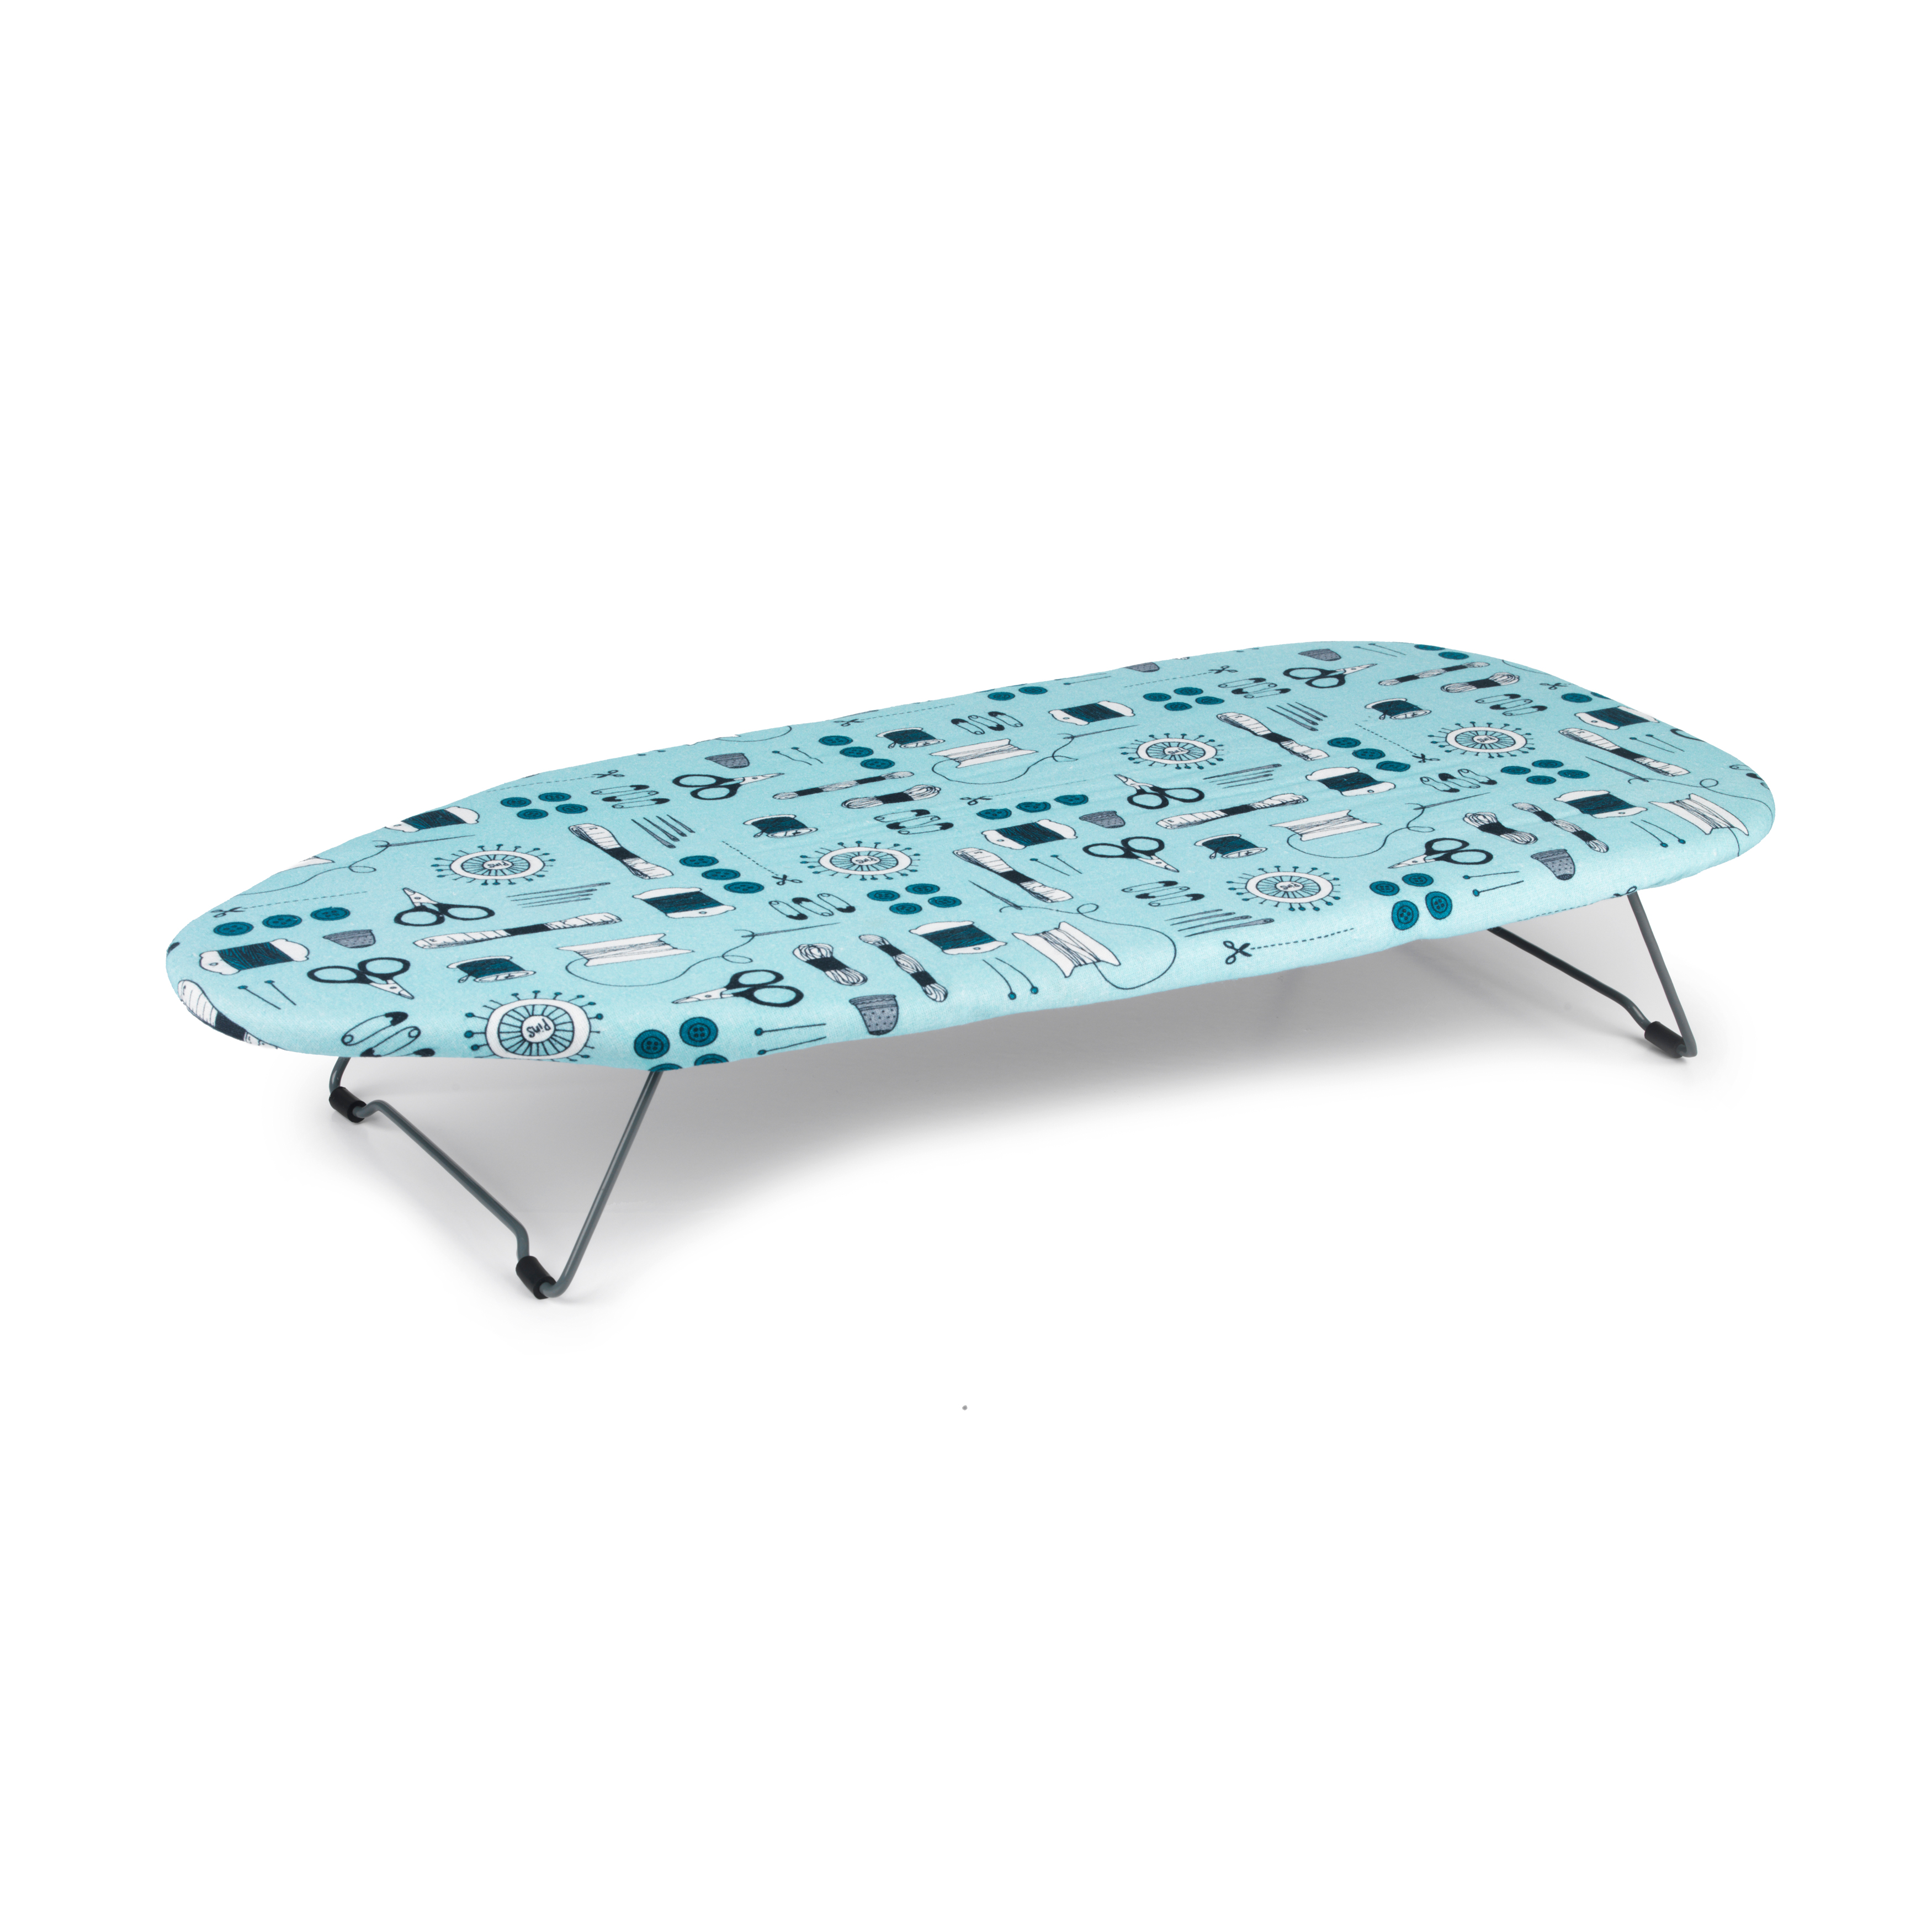 beldray la023735 sewing print table top ironing board 76 x. Black Bedroom Furniture Sets. Home Design Ideas